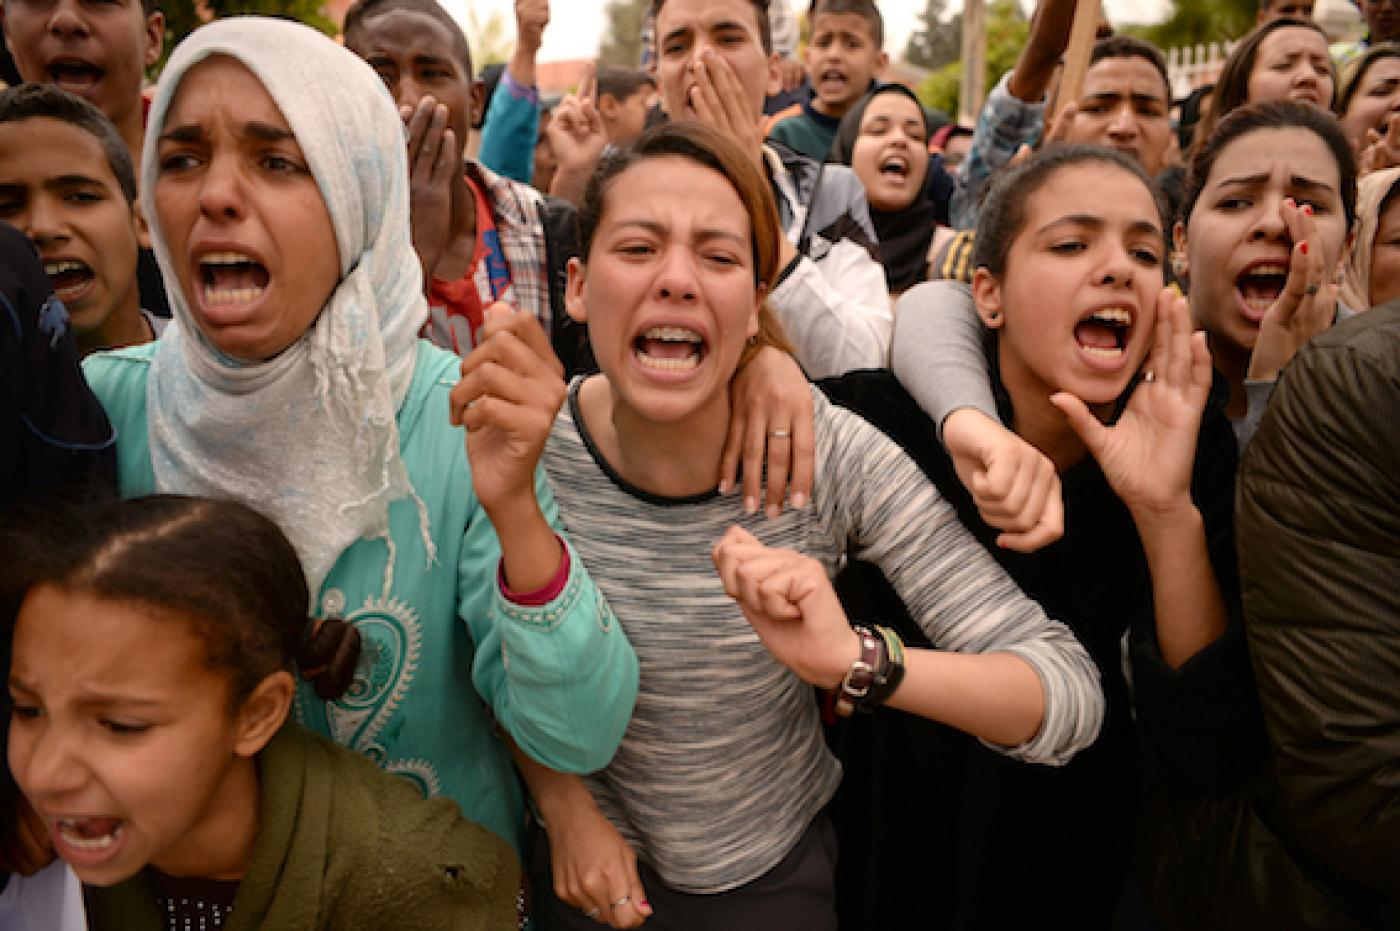 Homosexuality in Morocco: Girls' trial sparks debate on